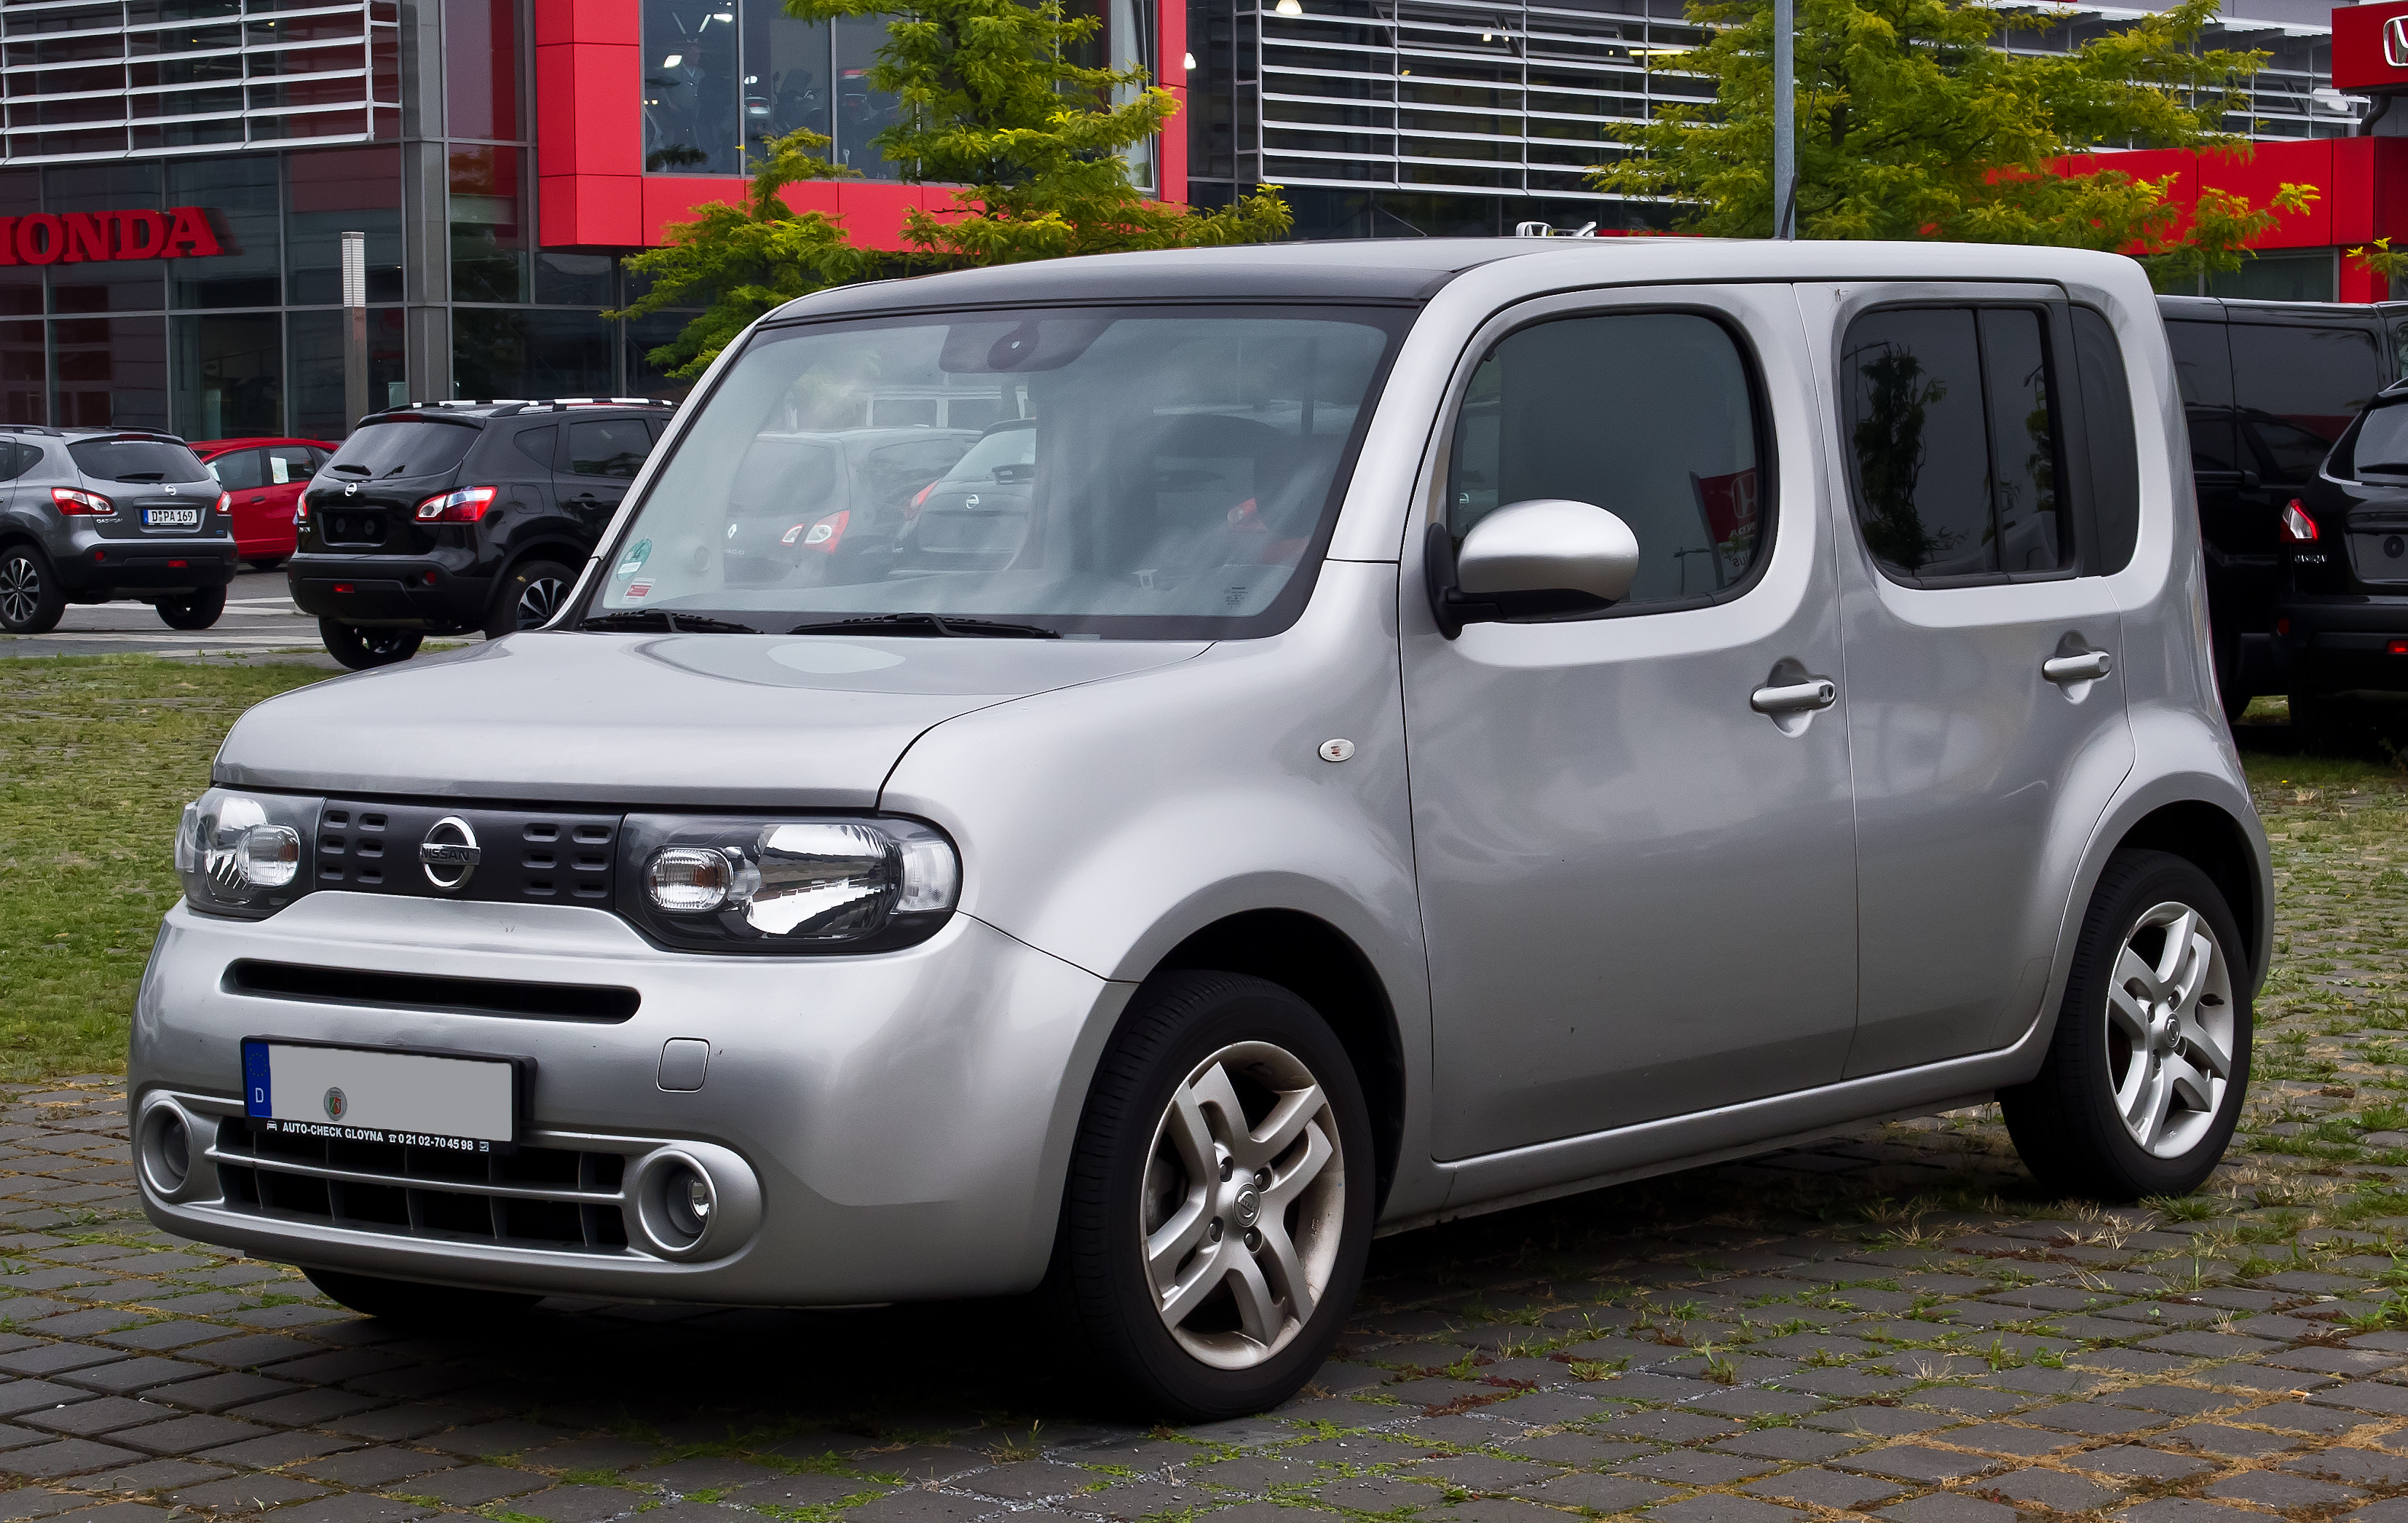 nissan cube wikipedia Nissan Cube Grille